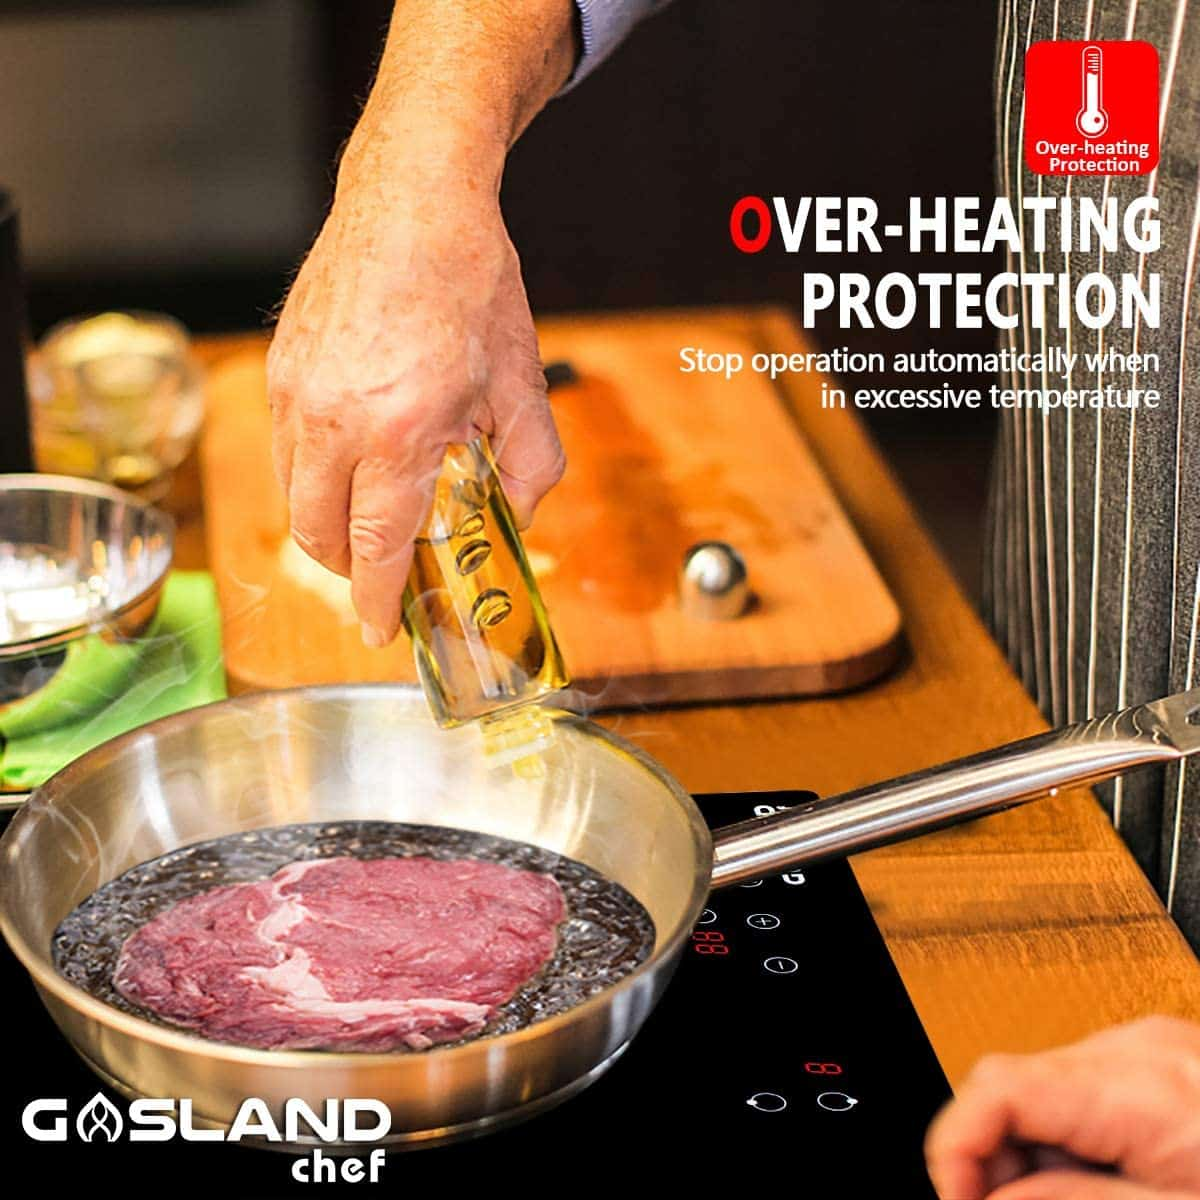 Best built-in induction stovetop for bachelor pad: Gasland